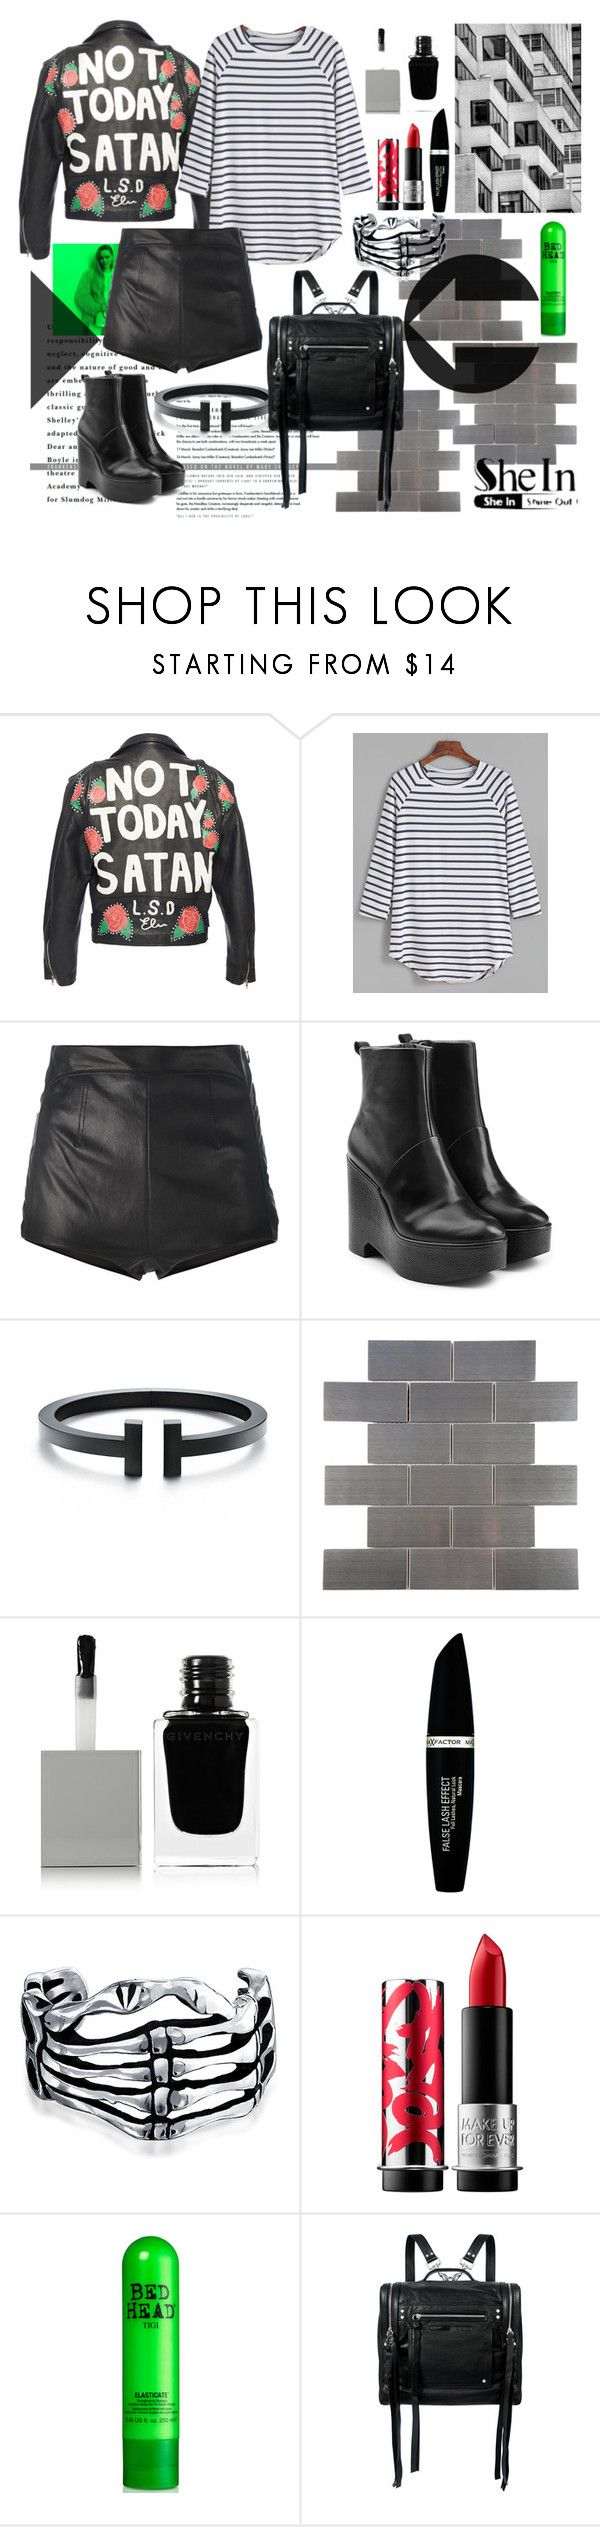 """""""not today"""" by ztugceuslu ❤ liked on Polyvore featuring HUGO, La Perla, Robert Clergerie, Merola, Givenchy, Max Factor, Bling Jewelry, MAKE UP FOR EVER and McQ by Alexander McQueen"""